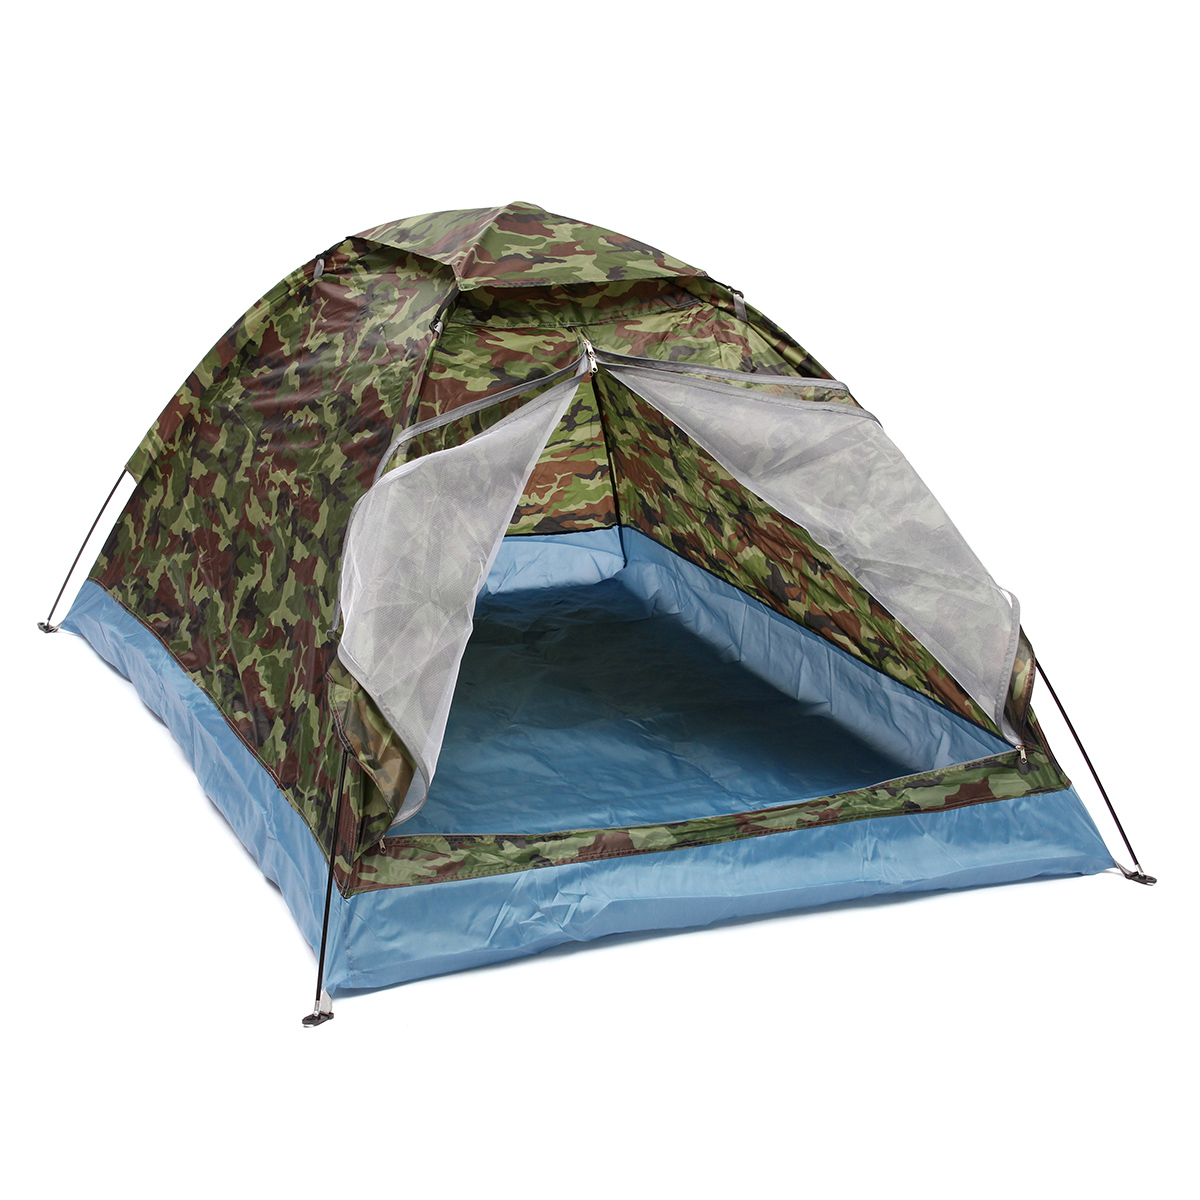 Outdoor 1-2 Persons Camping Tent Double Layer Waterproo